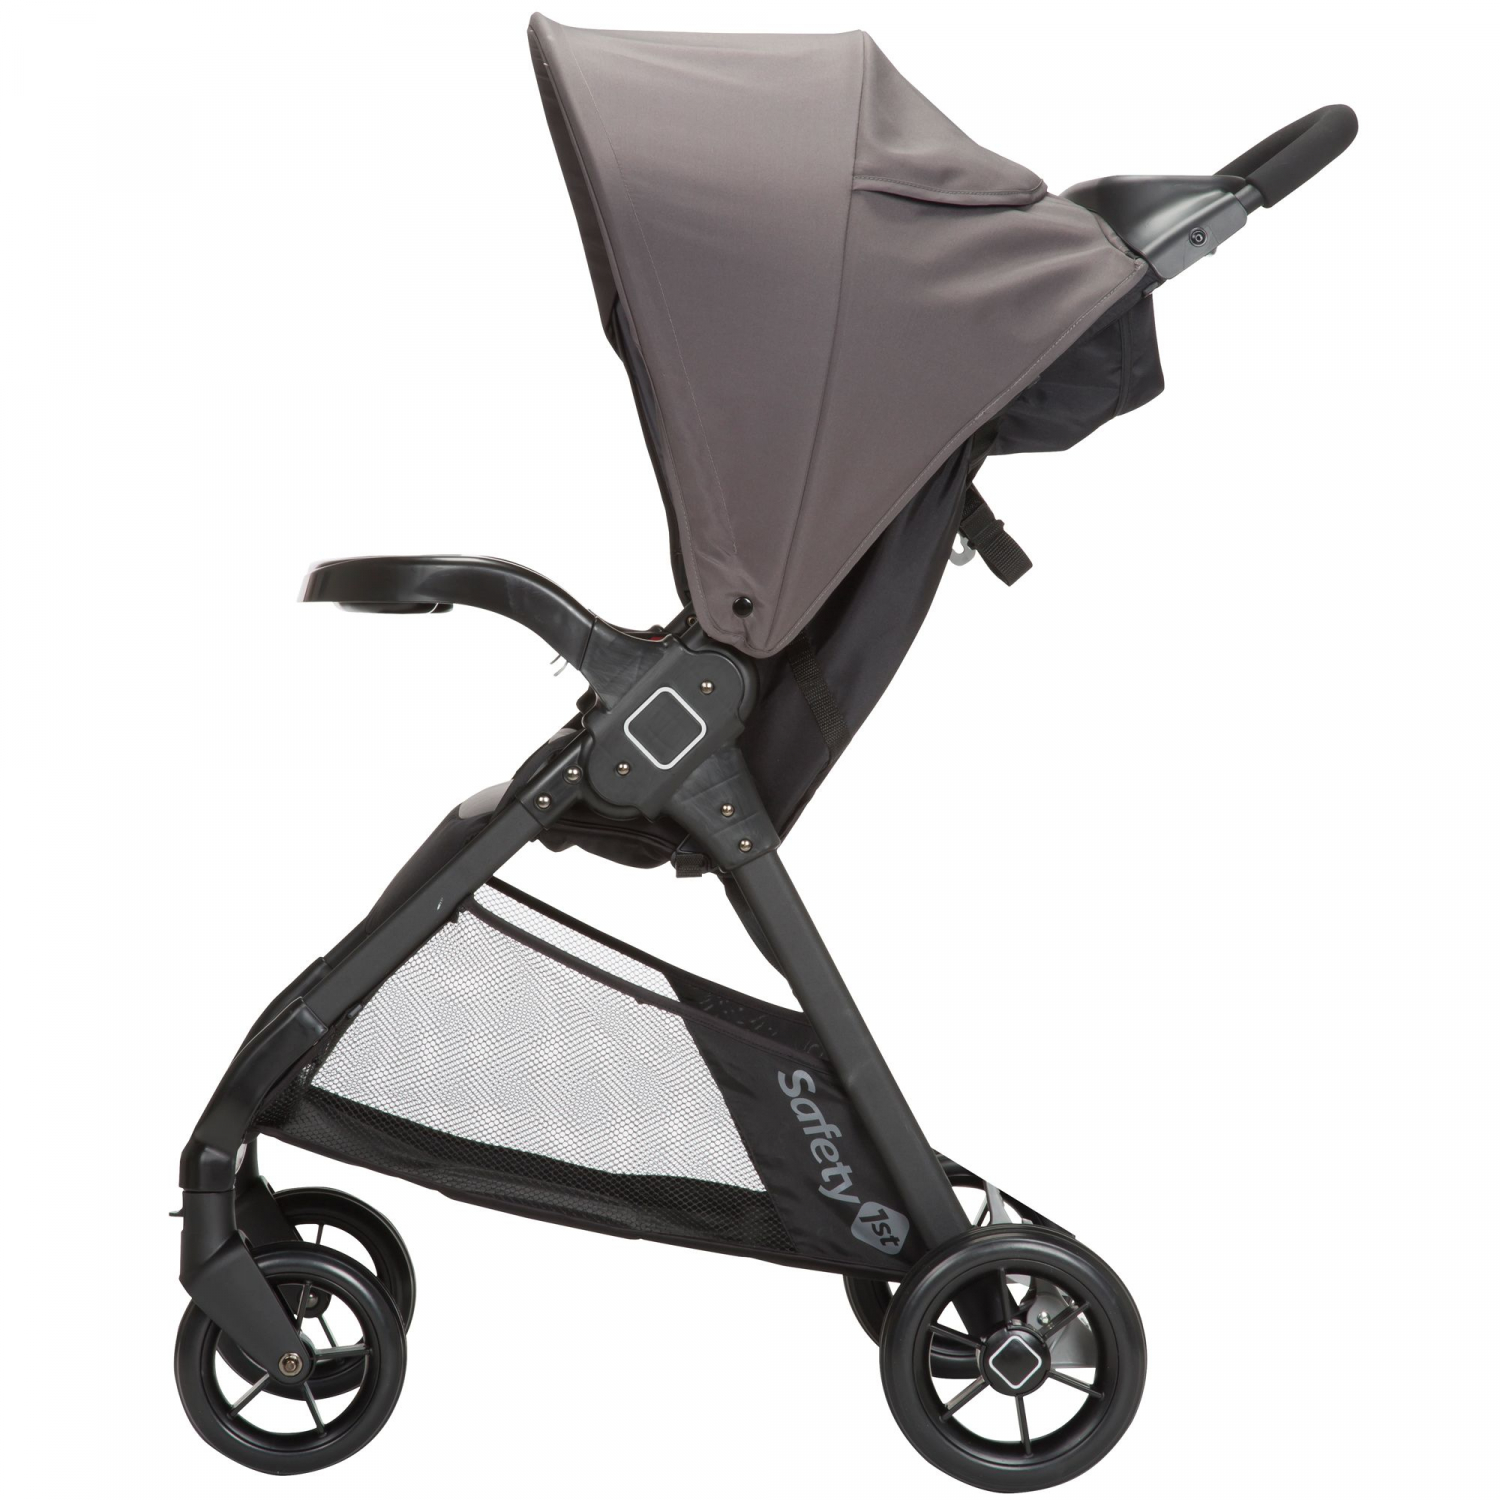 Details About Safety 1st Smooth Ride Travel System In Monument